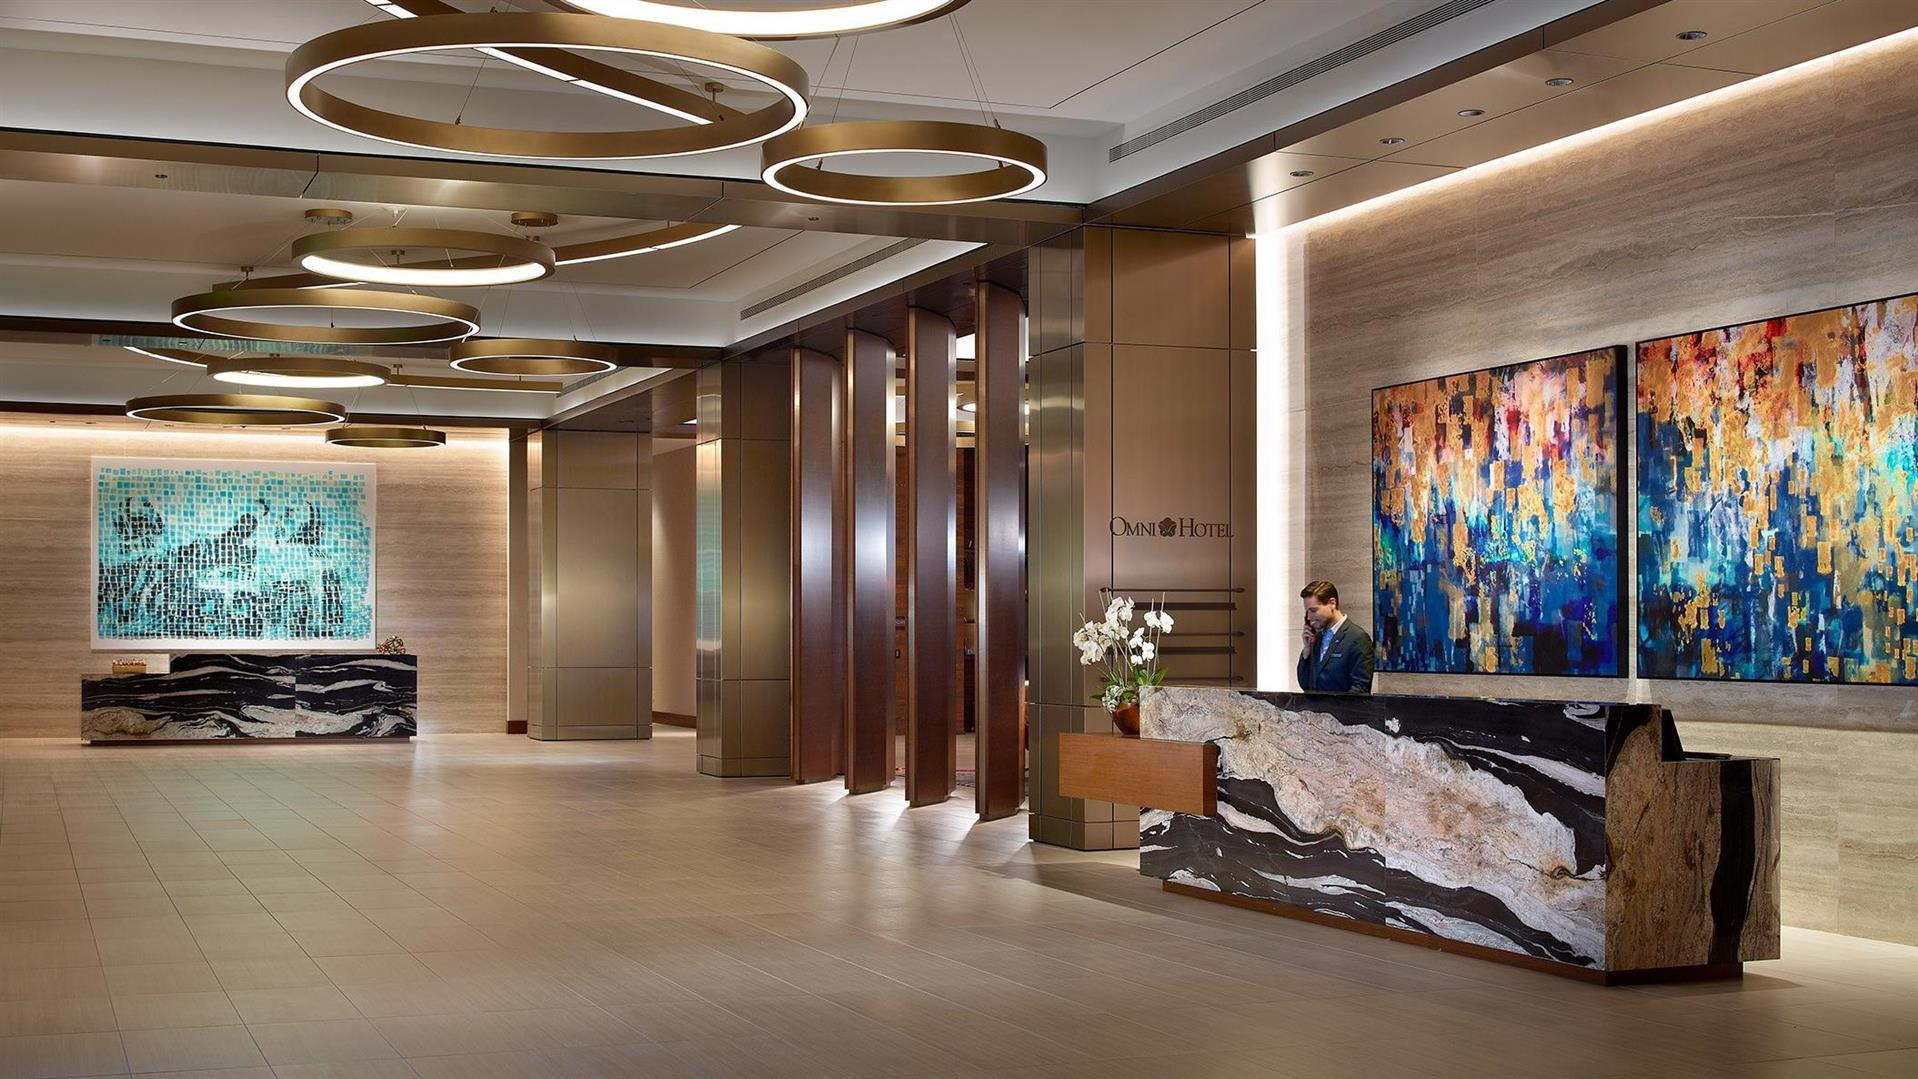 Meetings and events at Omni Frisco Hotel, Frisco, TX, US